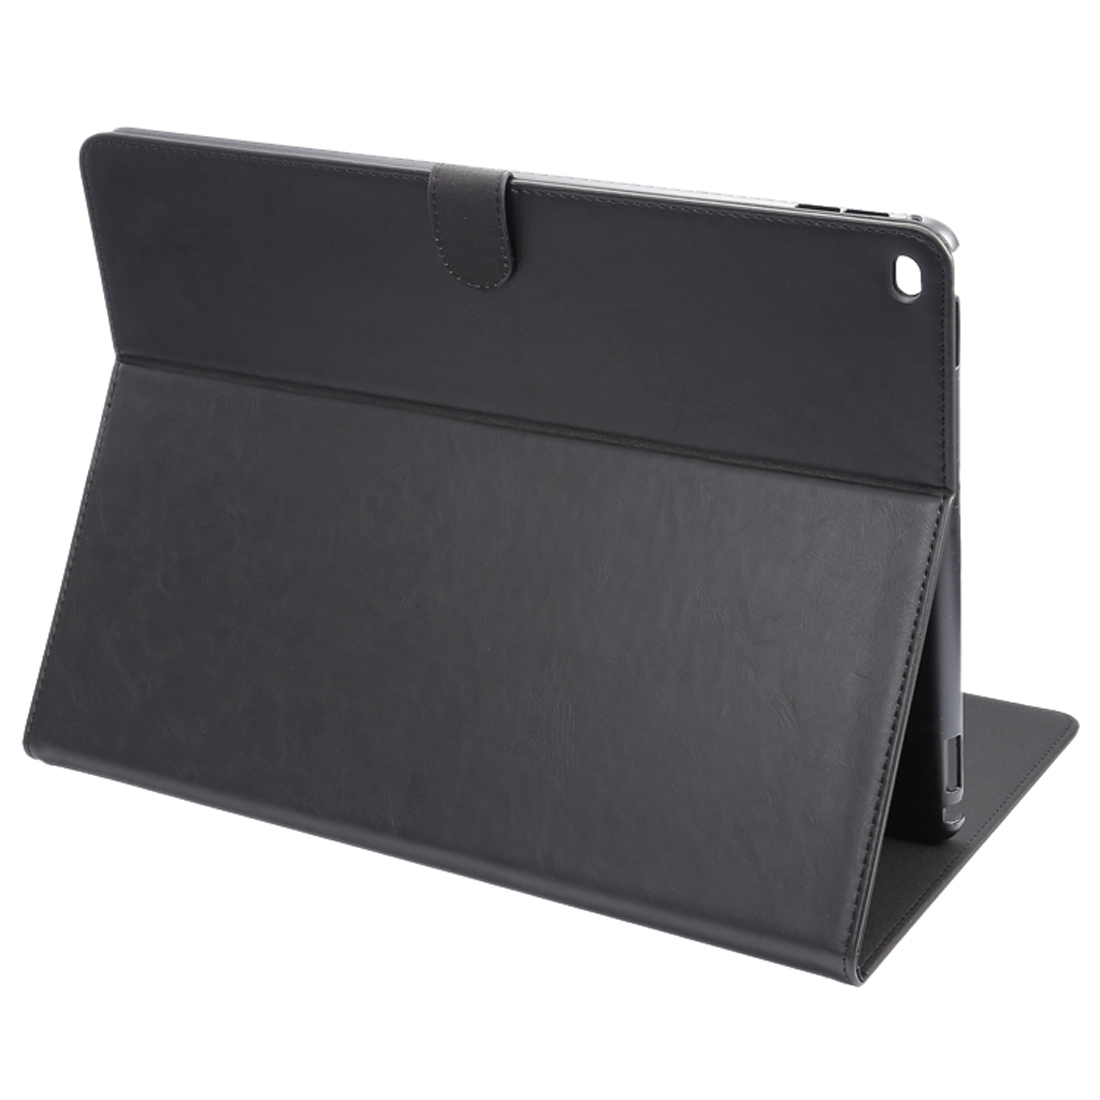 iPad Pro 12.9 Case In Protective Hide Grain Leather Sheath With Auto Sleep (Black)